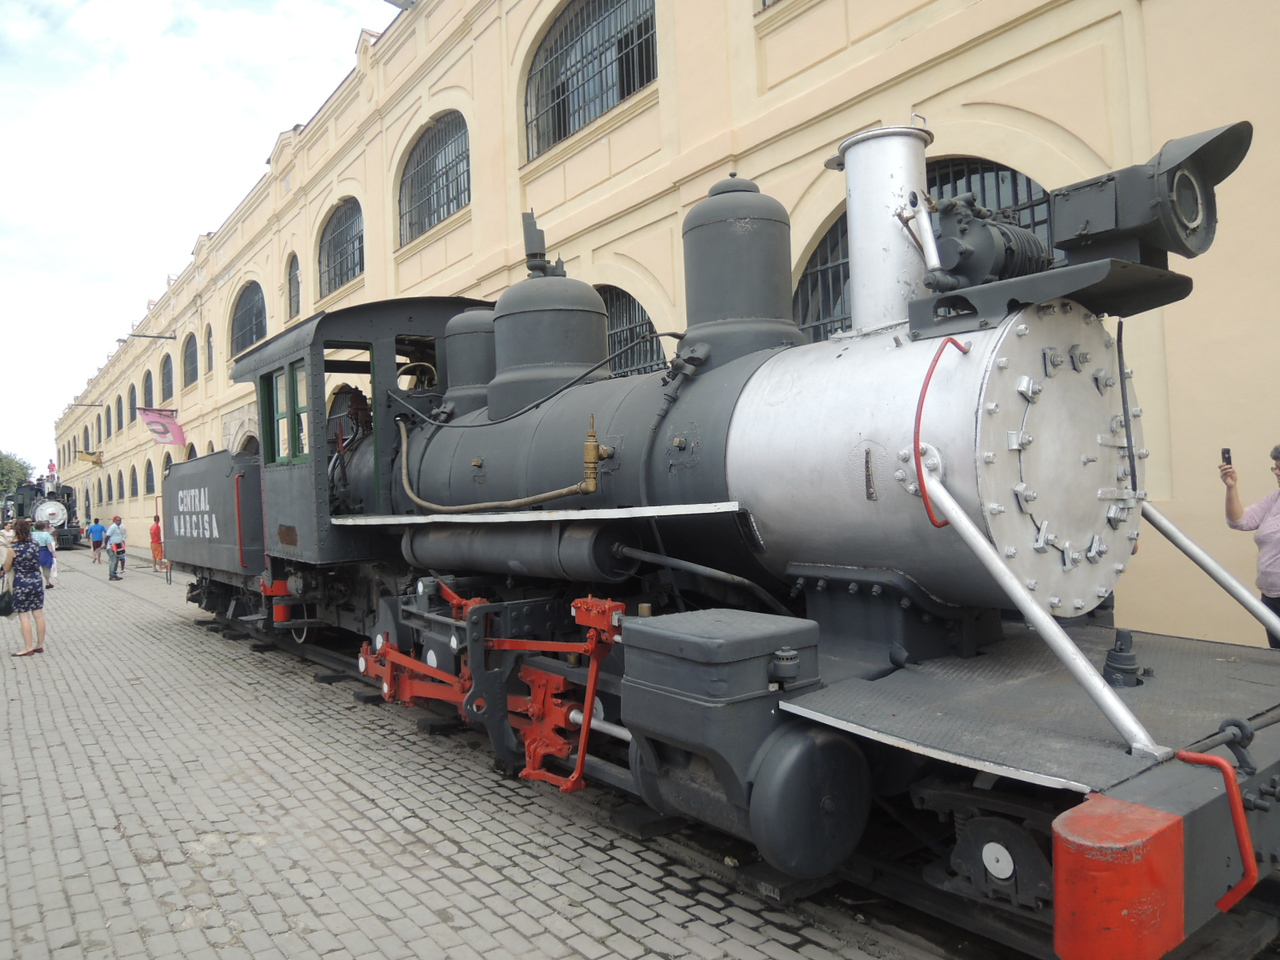 An old locomotive at the former Havana train station.  The building is now full of booths selling tourist stuff.  Agressively.